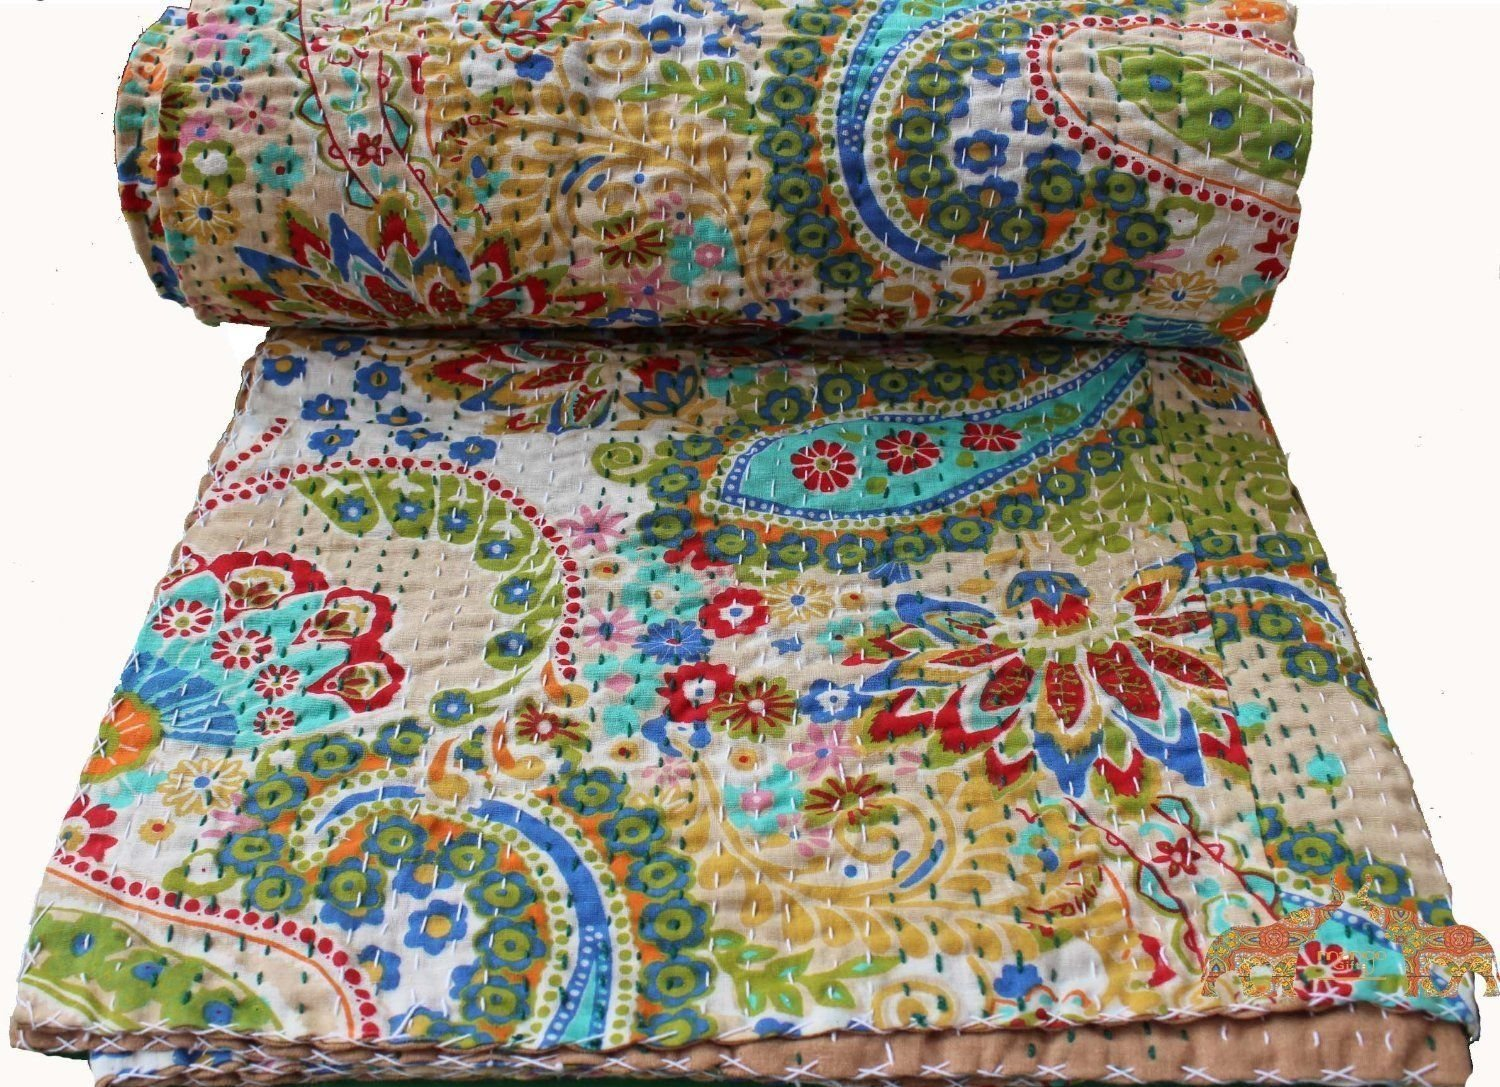 Mango Gifts Pure Cotton Kantha Style Quilt Bed Spread Indian Gudri Bed Cover Queen Size